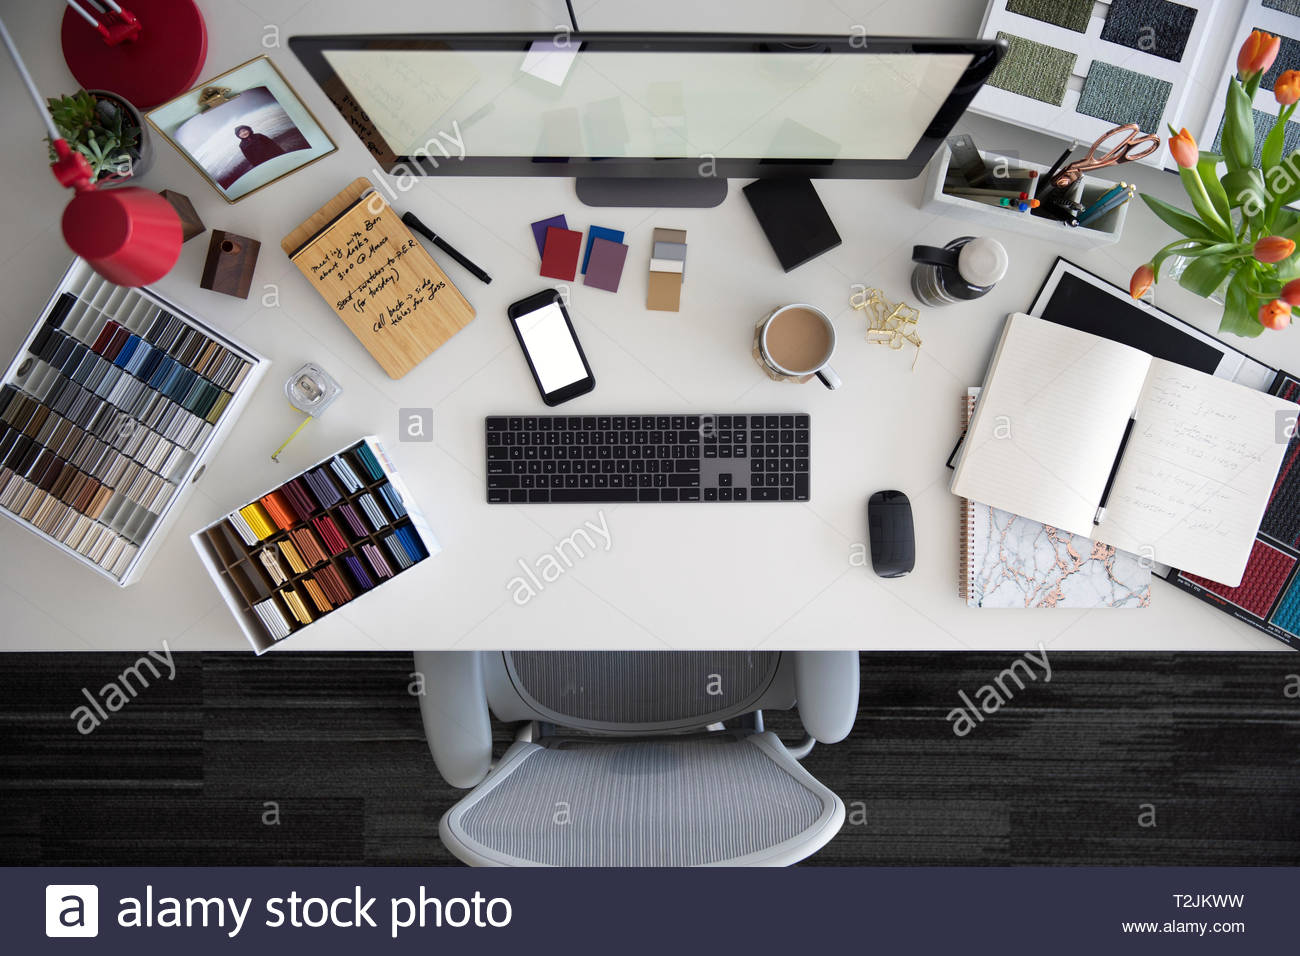 View from above interior design desk - Stock Image